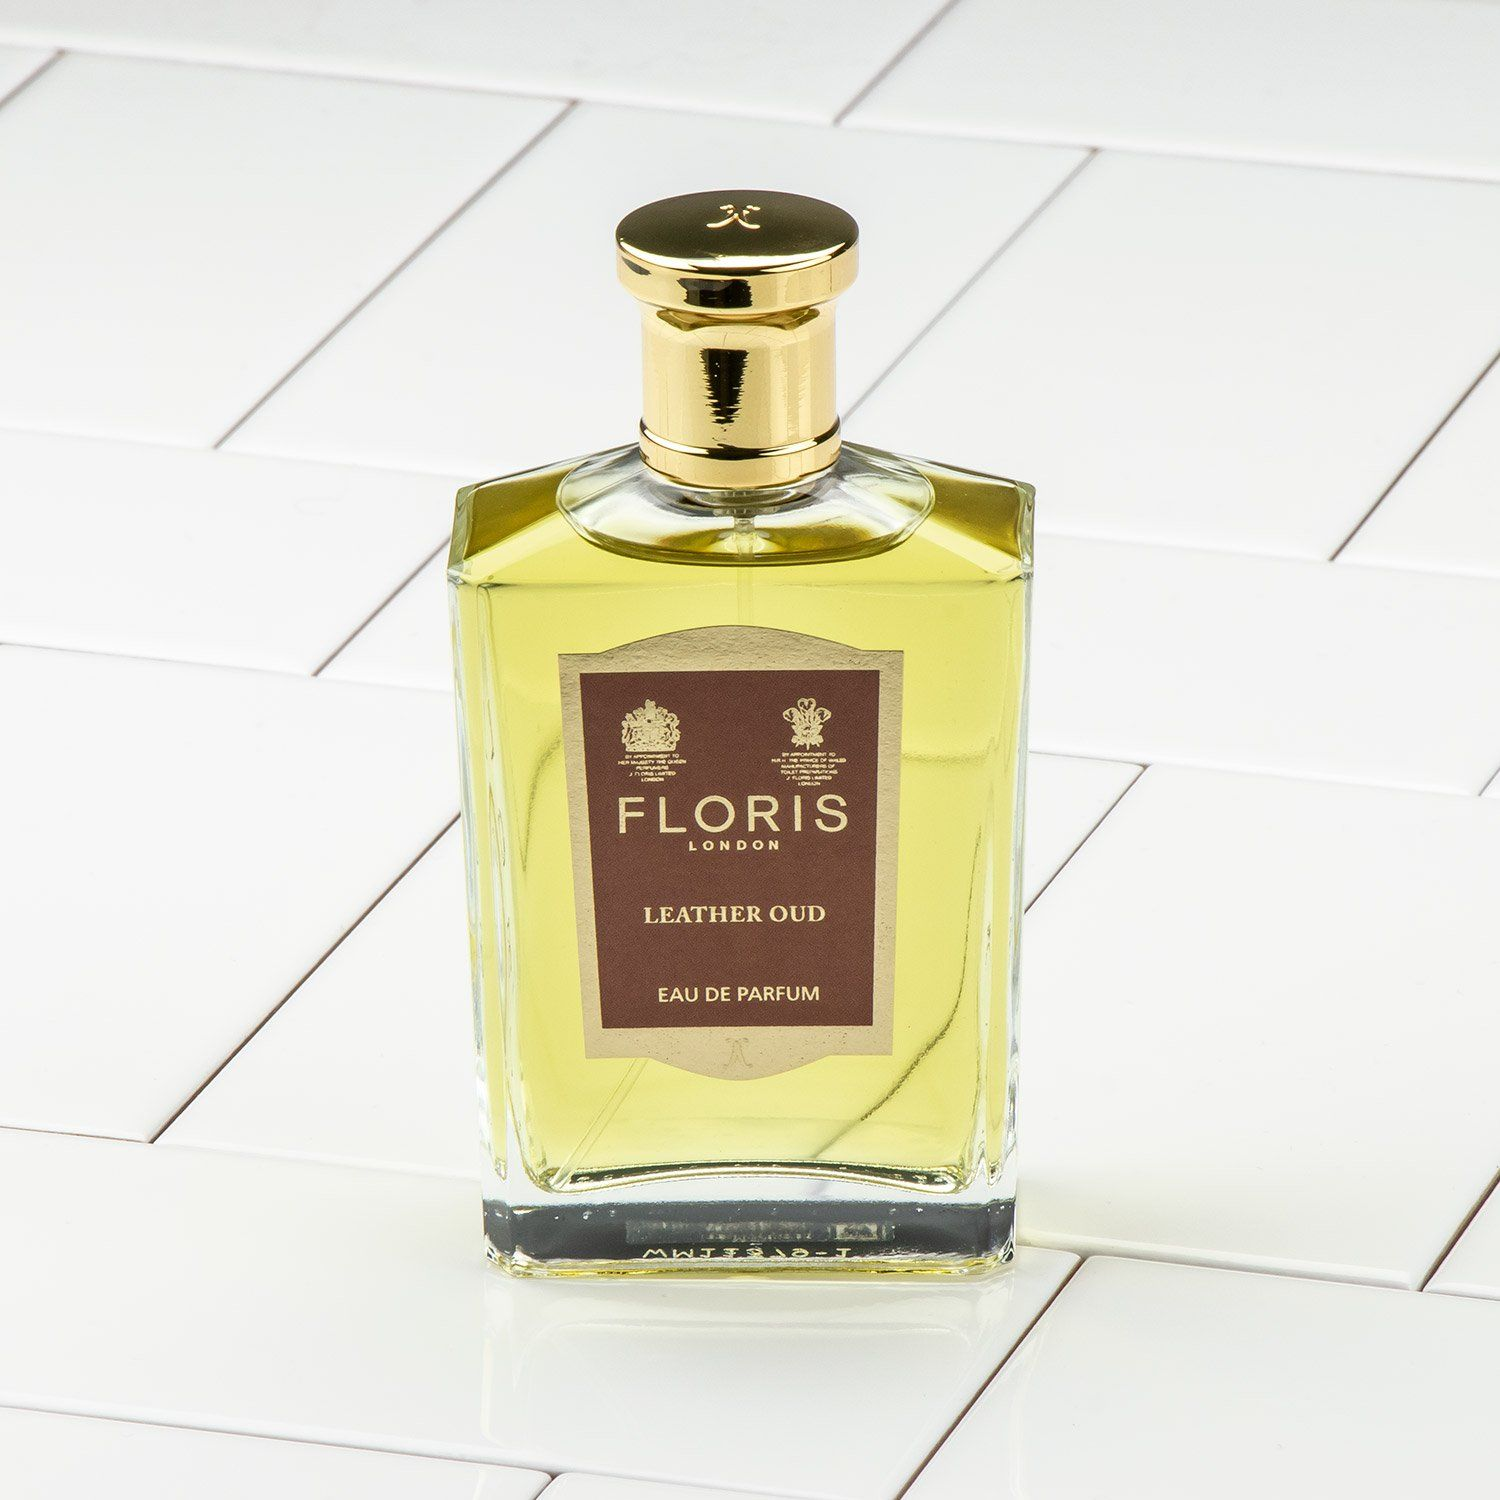 Floris Leather Oud Eau de Parfum